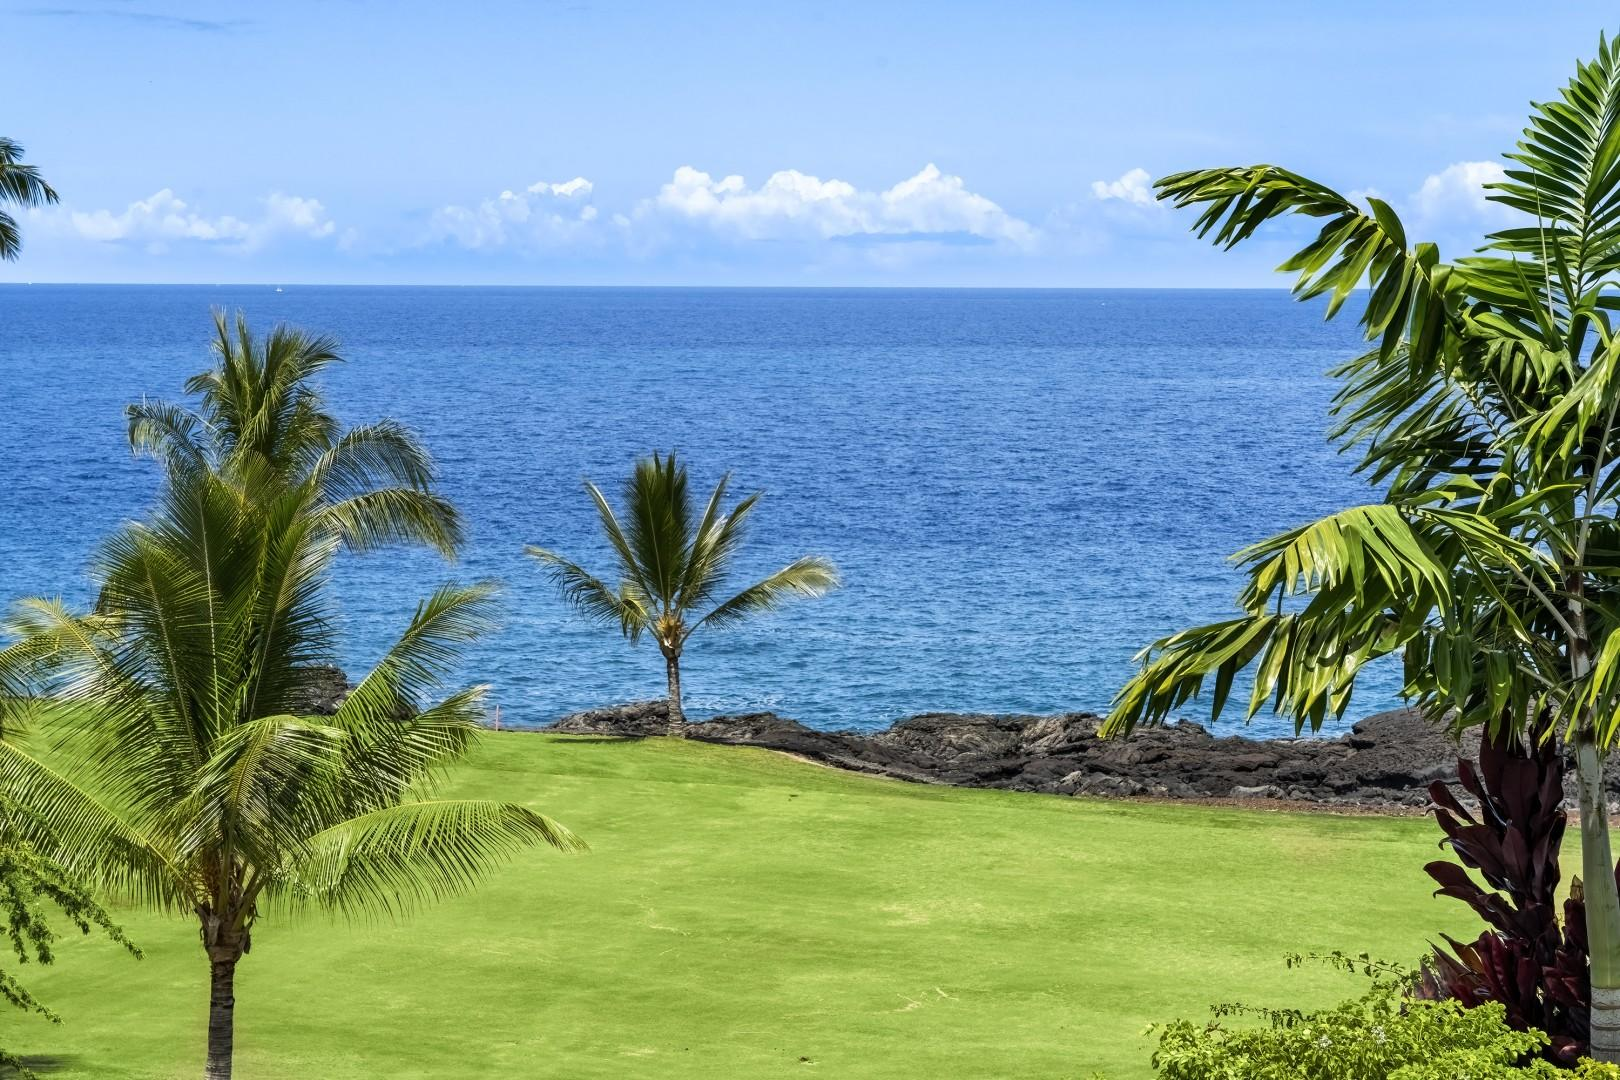 Views from the yard of the coastline!